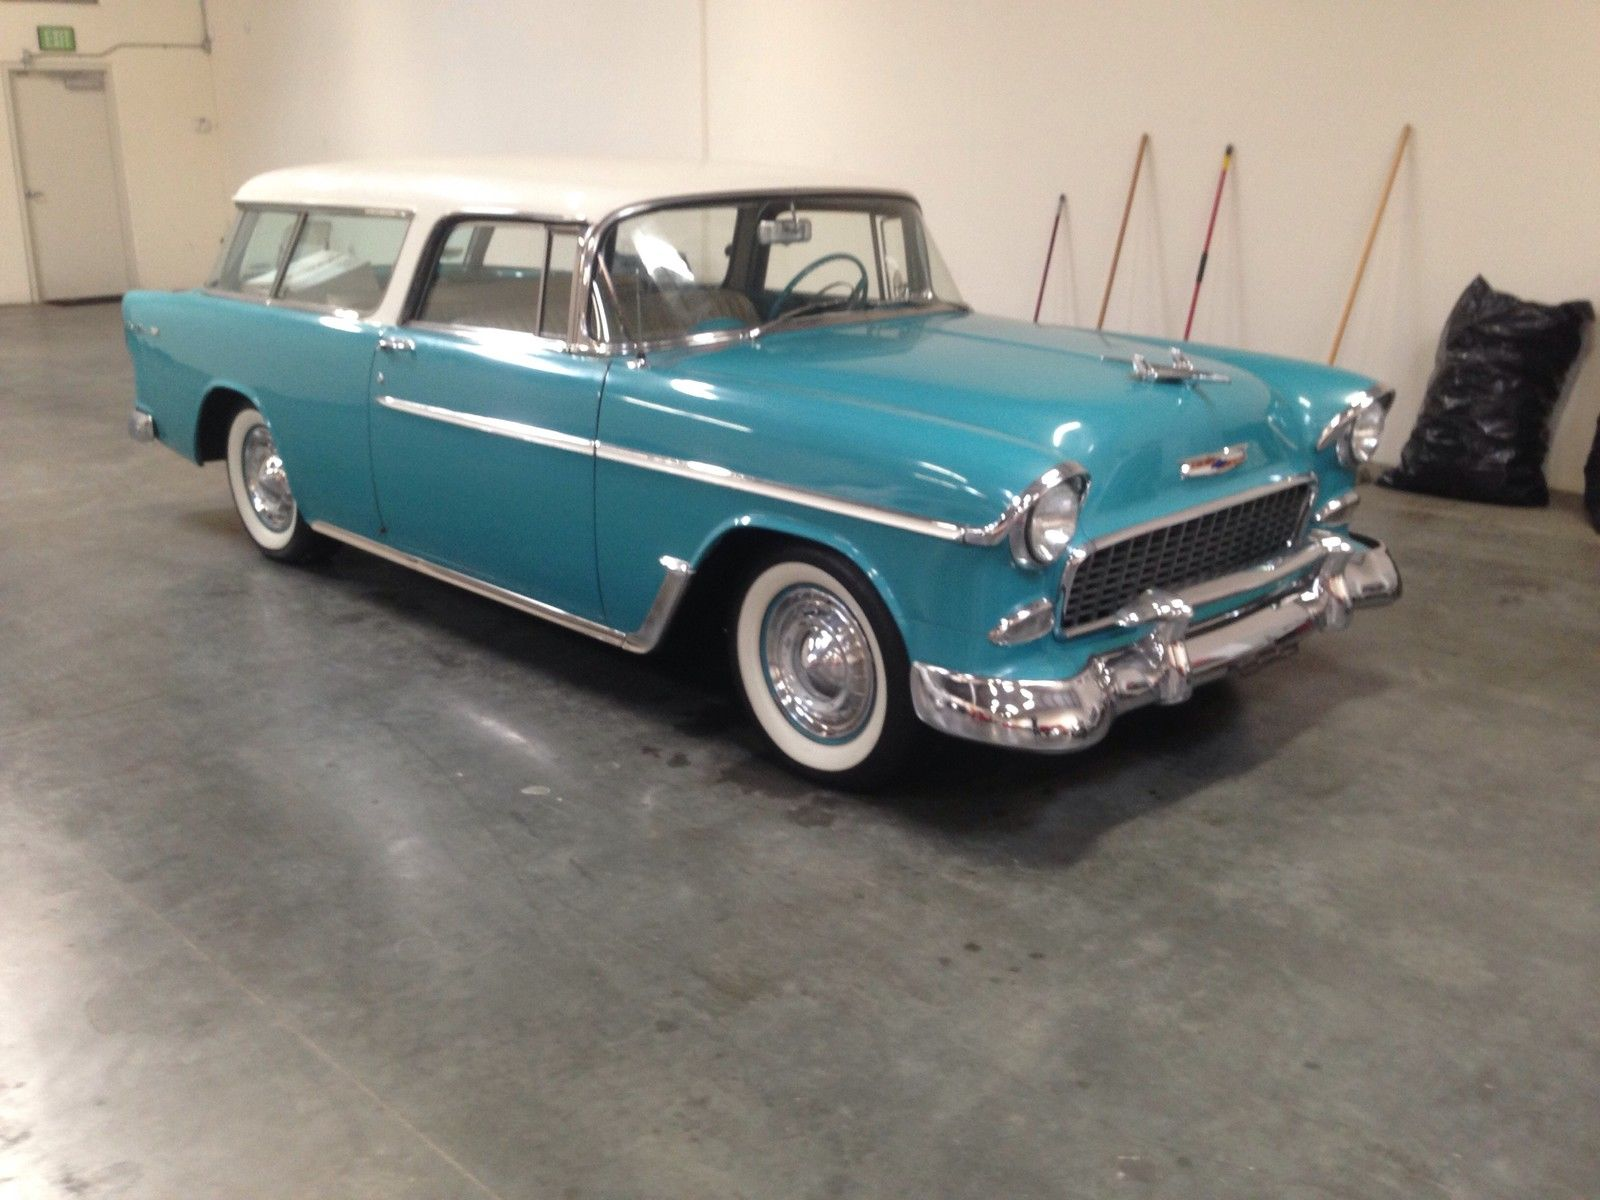 1955 Chevrolet Nomad Unrestored Project Car For Sale: 55 Chevy Nomad 55 56 57 Chevy Belair